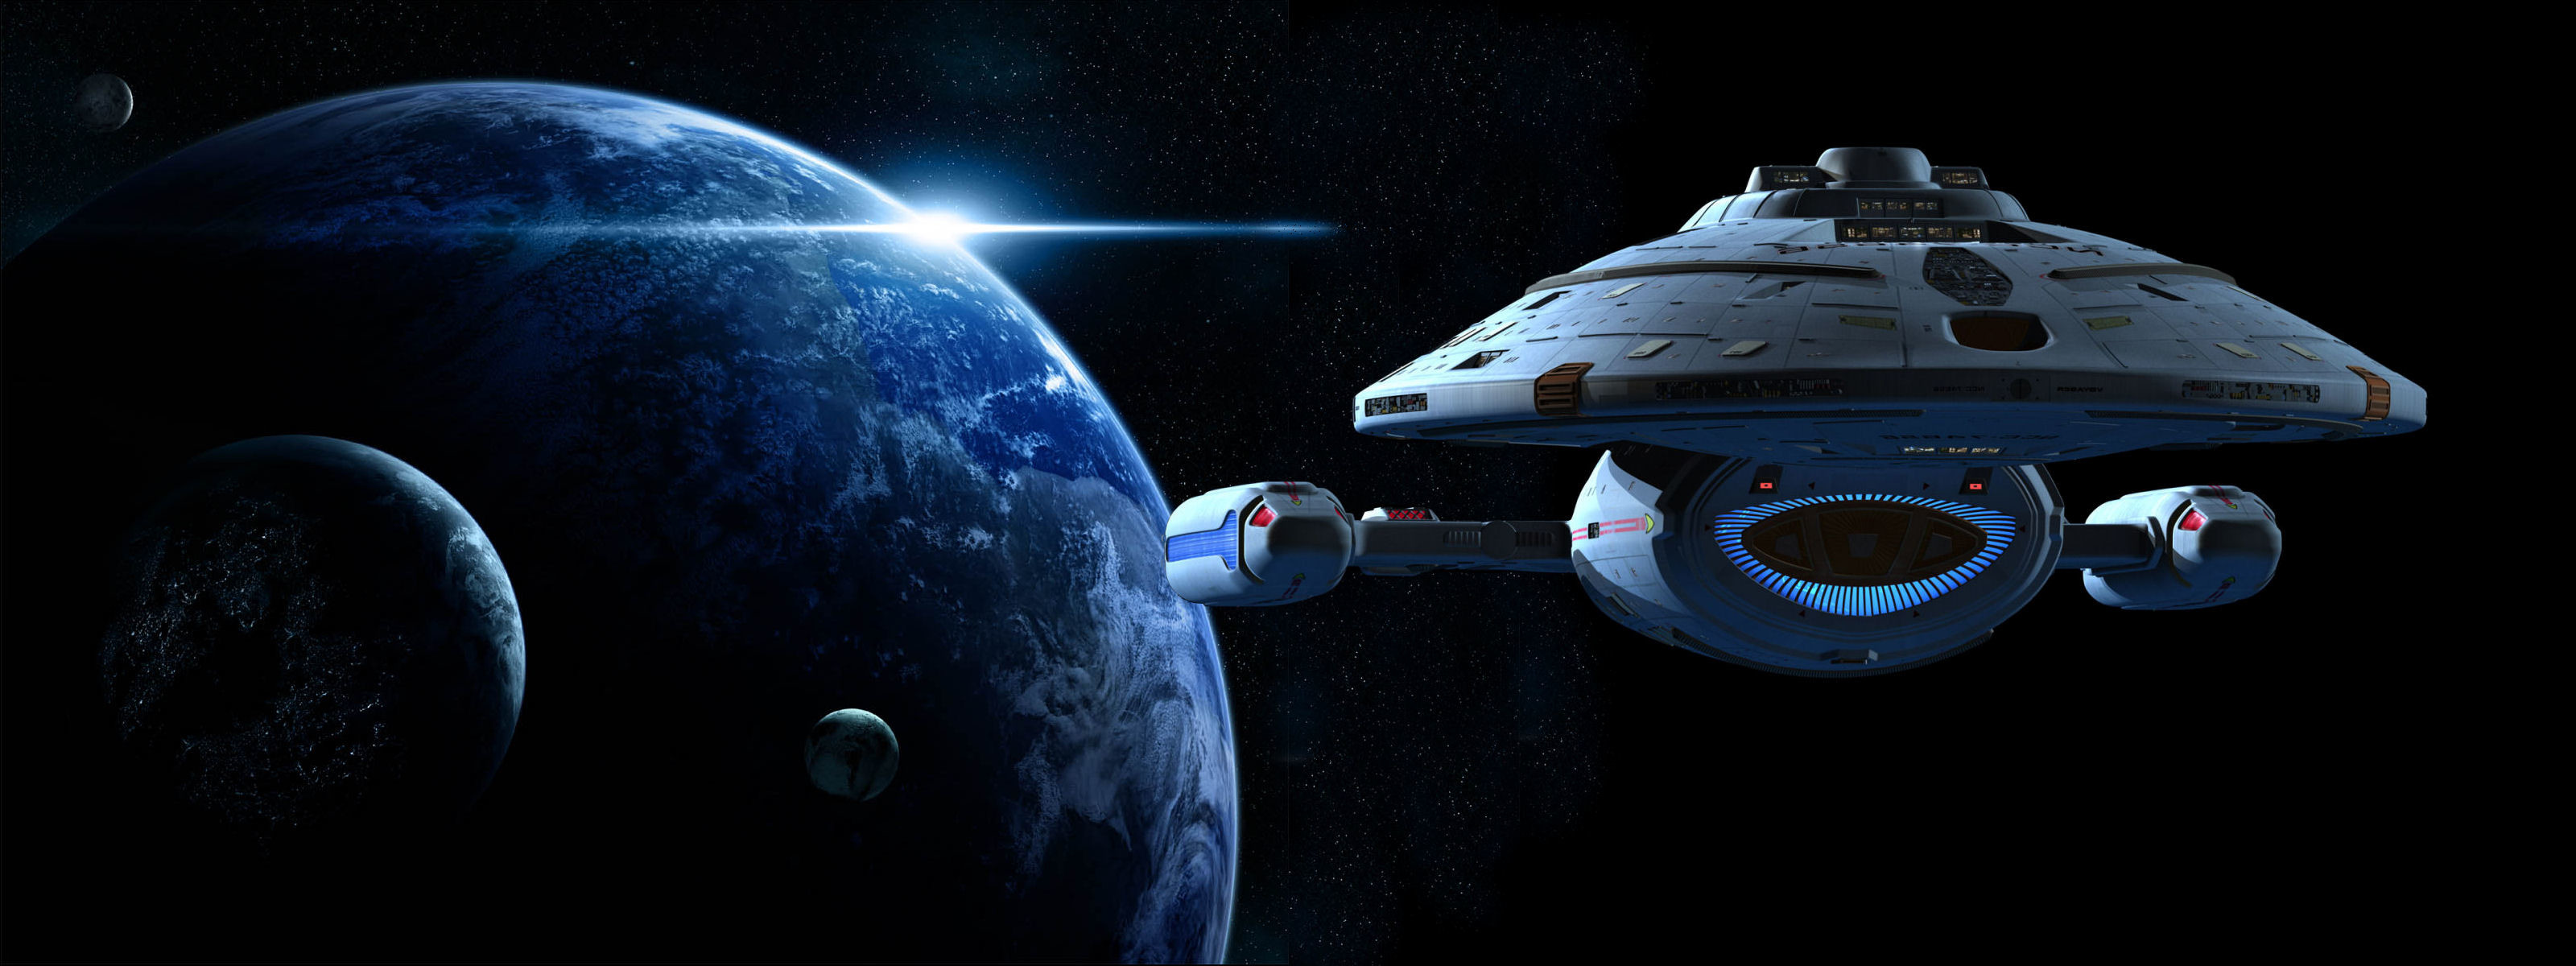 3200x1200 Star Trek Desktop Background - WallpaperSafari